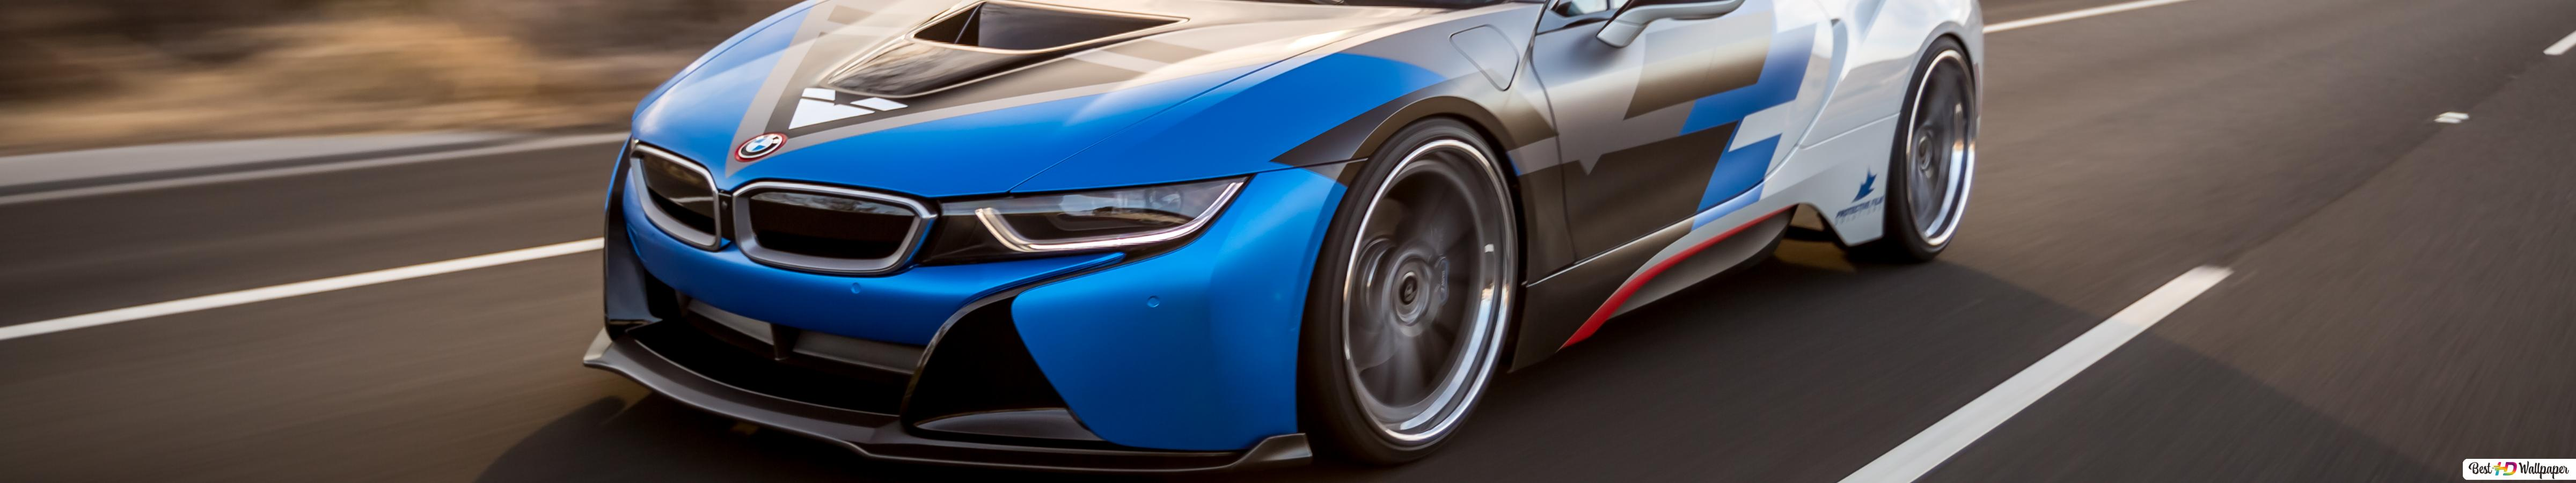 Bmw I8 Hd Wallpaper Download